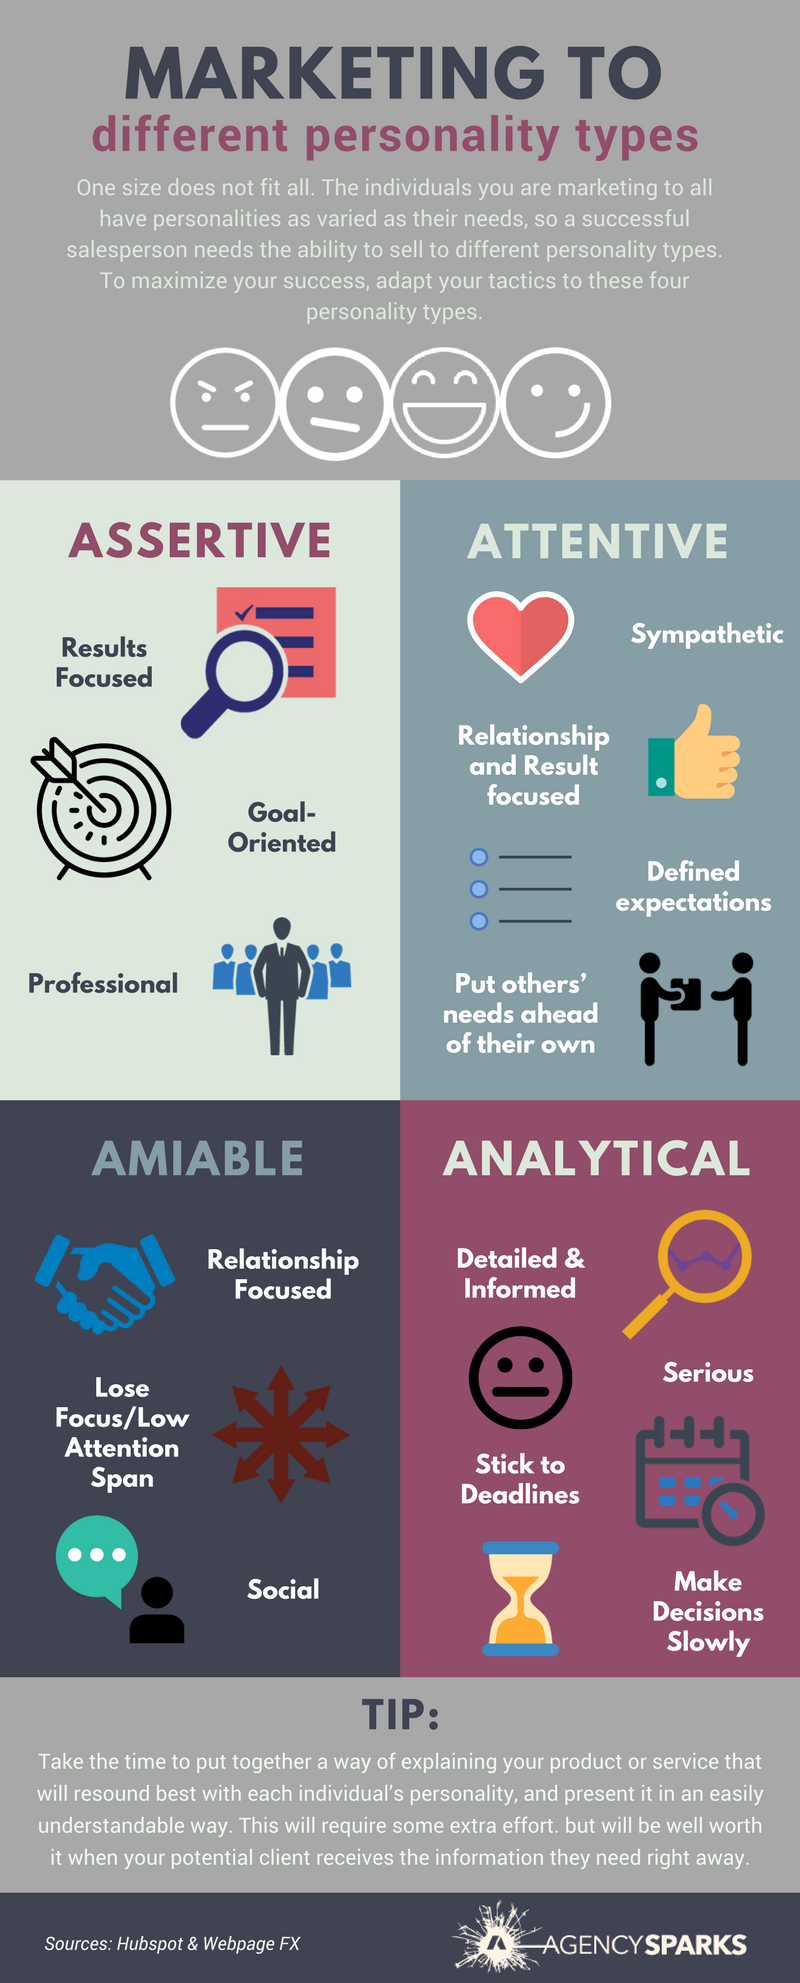 """The individuals you are marketing to all have personalities as varied as their needs, so you need to be able to market to different personality types. To maximize your success, adapt your tactics to these four personality types. The four types are Assertive, Animated, Amiable and Analytical. Assertive personality types are results focused, goal oriented and professional. Those who are animated are sympathetic, relationship and result focused, and have defined expectations.Amiable individuals are relationship focused, social, tend to lose focus and have a low attention span. Analytical personalities are detailed, informed, stick to deadlines, make decisions slowly, and are very serious.    Make sure to   put together a way of explaining your product or service that will resound best with each individual's personality, and present it in an easily understandable way. This will help you """"a""""ce those marketing efforts!"""